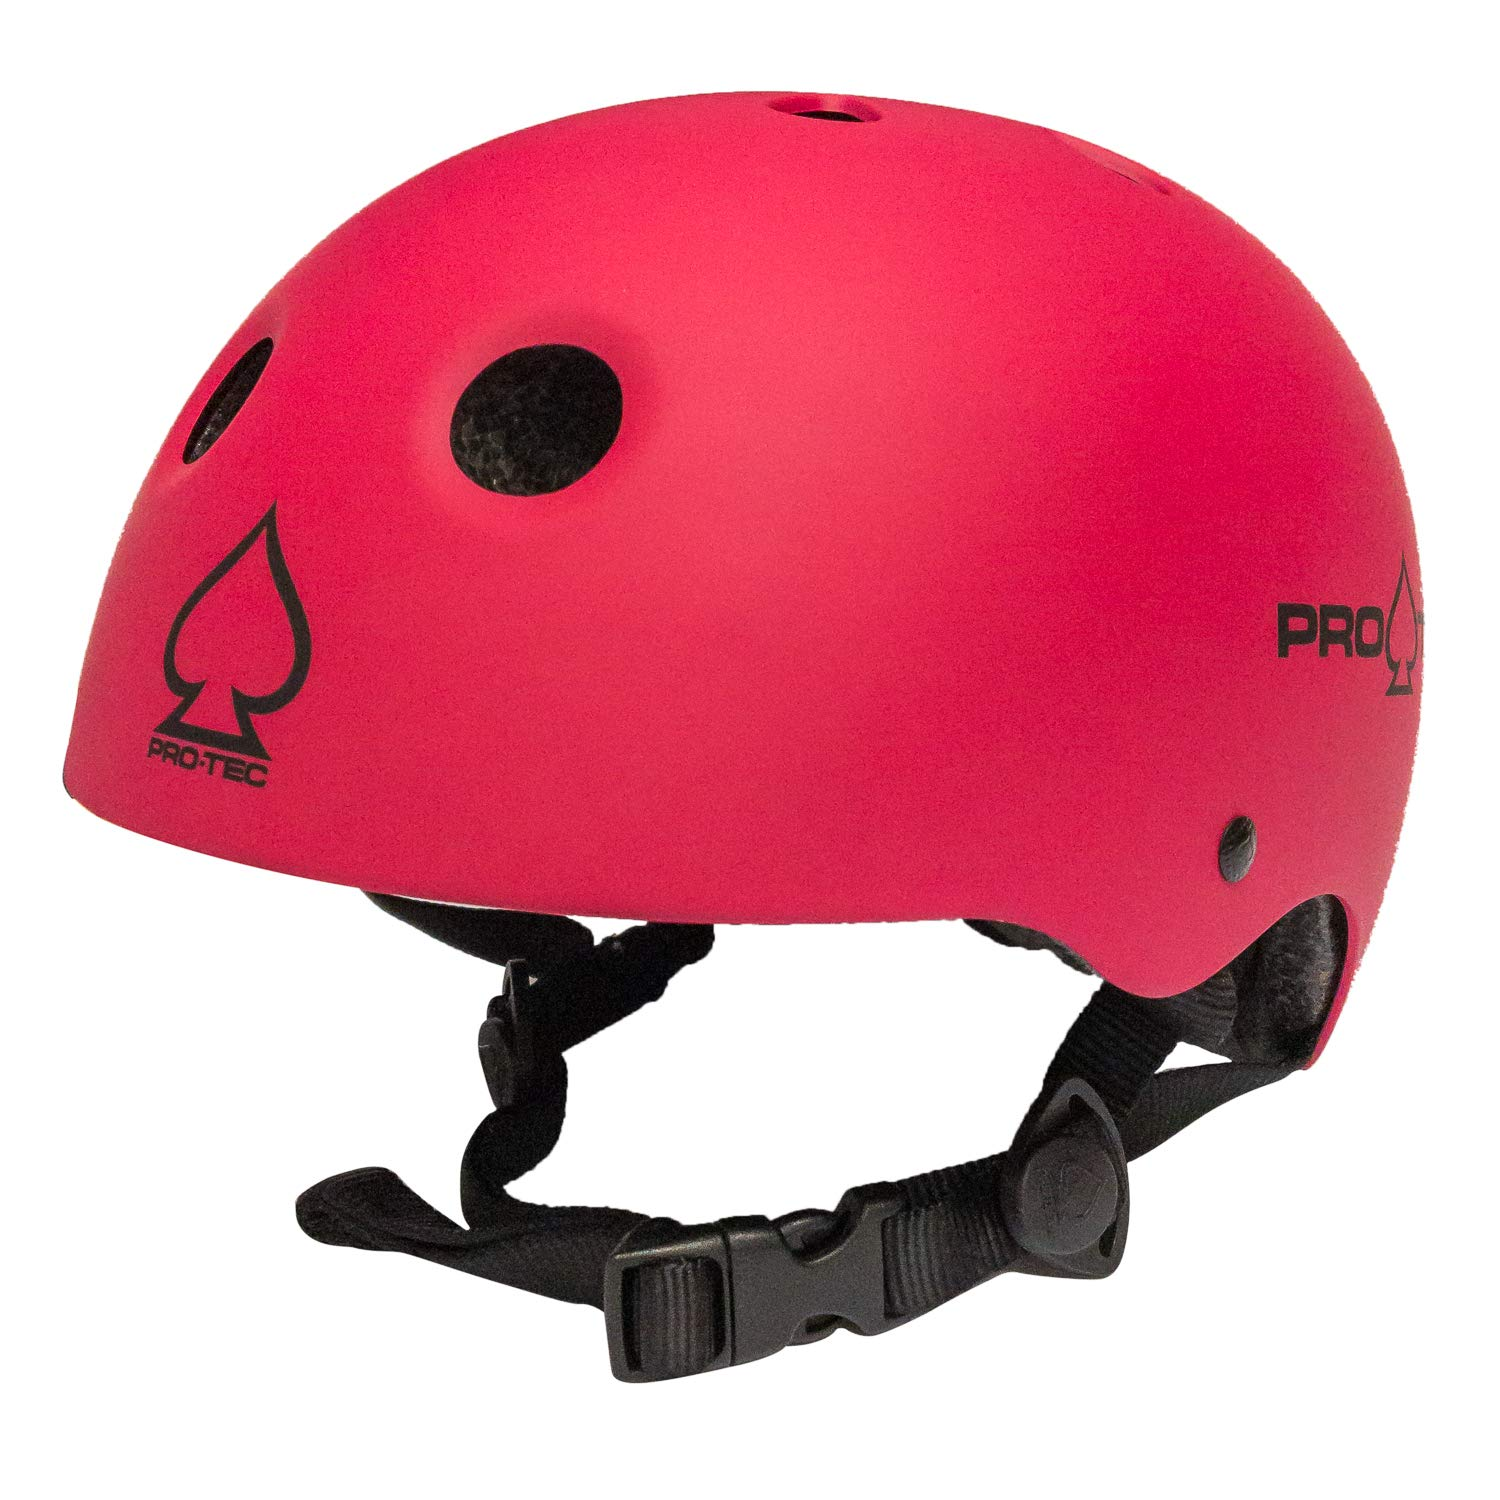 Pro-Tec Classic Certified Skate Helmet (Matte Pink, Small)